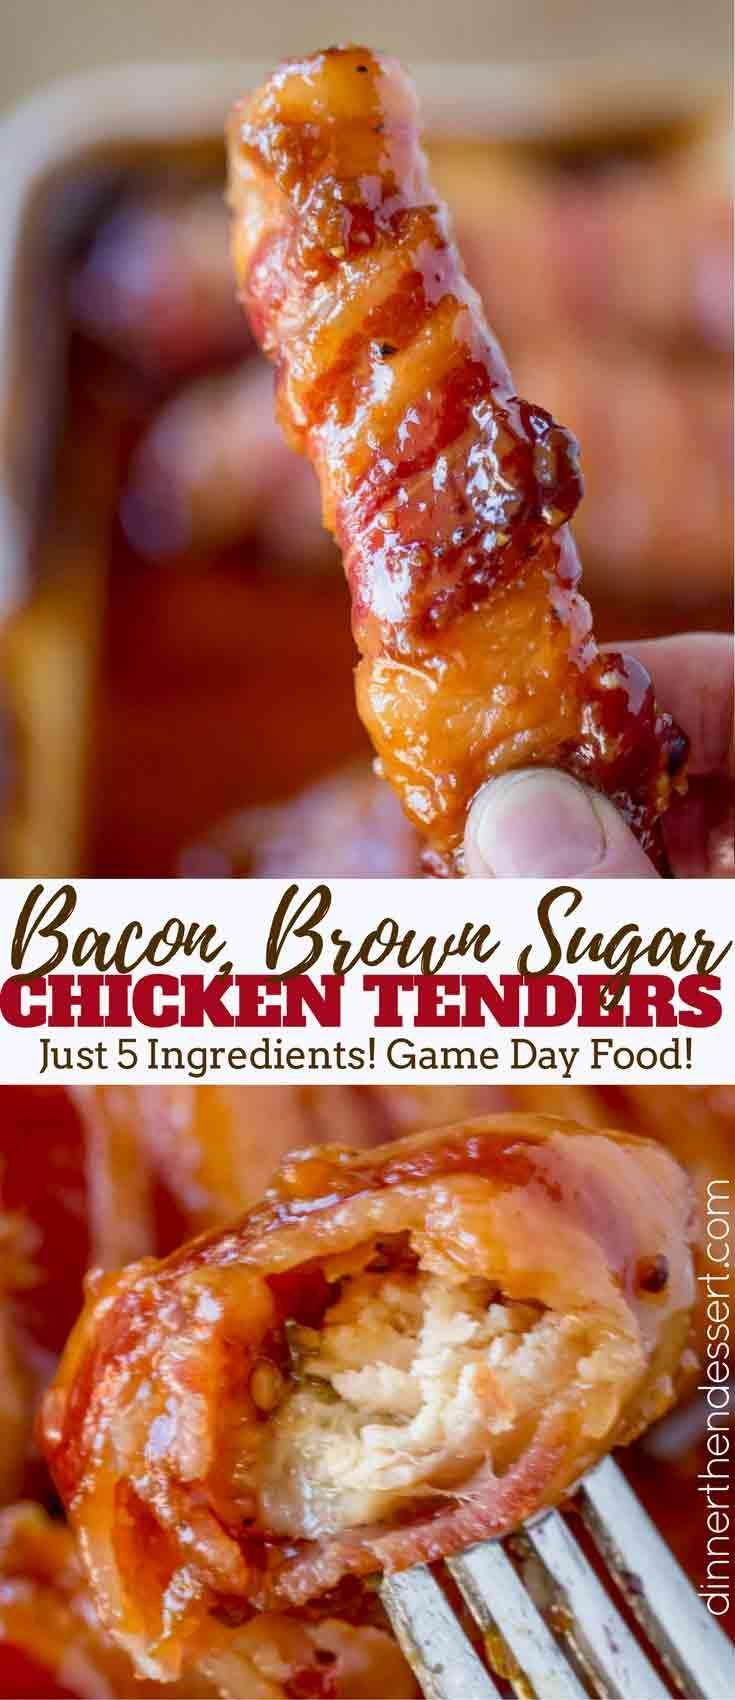 Bacon Brown Sugar Chicken Tenders with just five ingredients and 30 minutes these are the PERFECT gameday treat! A sticky, sweet, salty, crunchy appetizer.